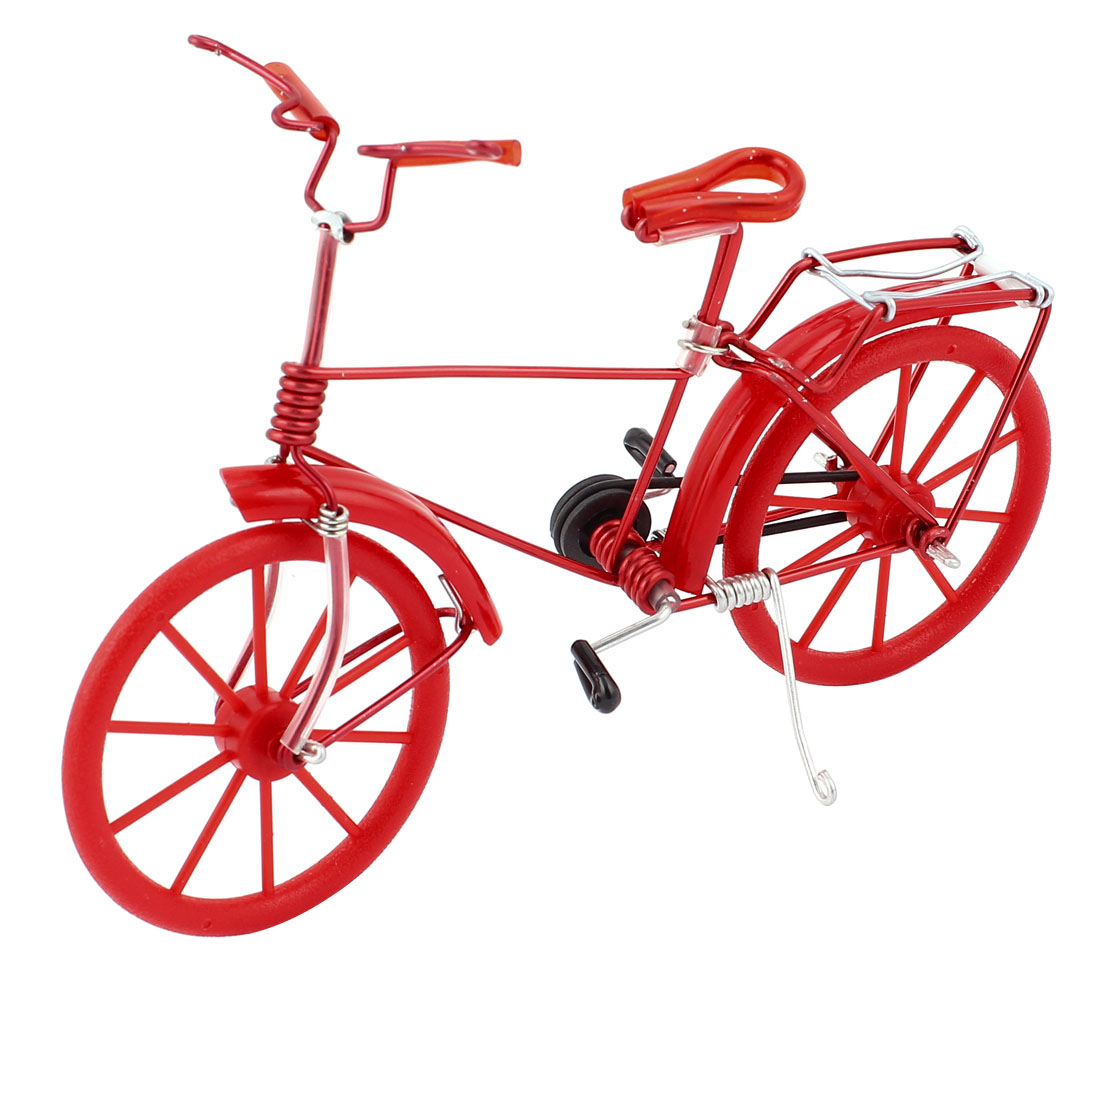 Handmade Bike Bicycle Model Home Table Decoration Ornament Toy Red